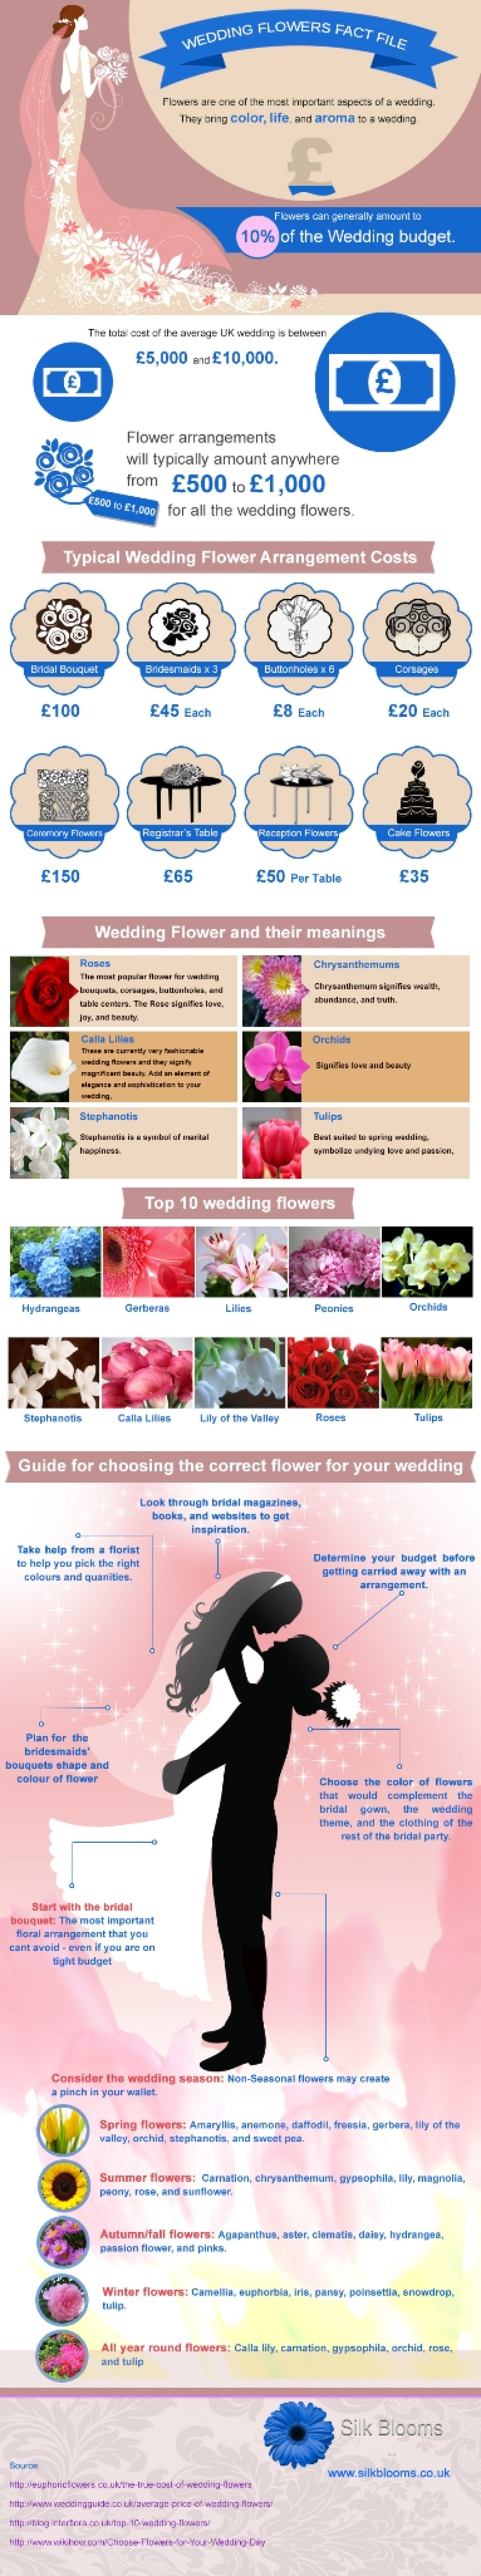 Wedding Flowers Fact File Infographic